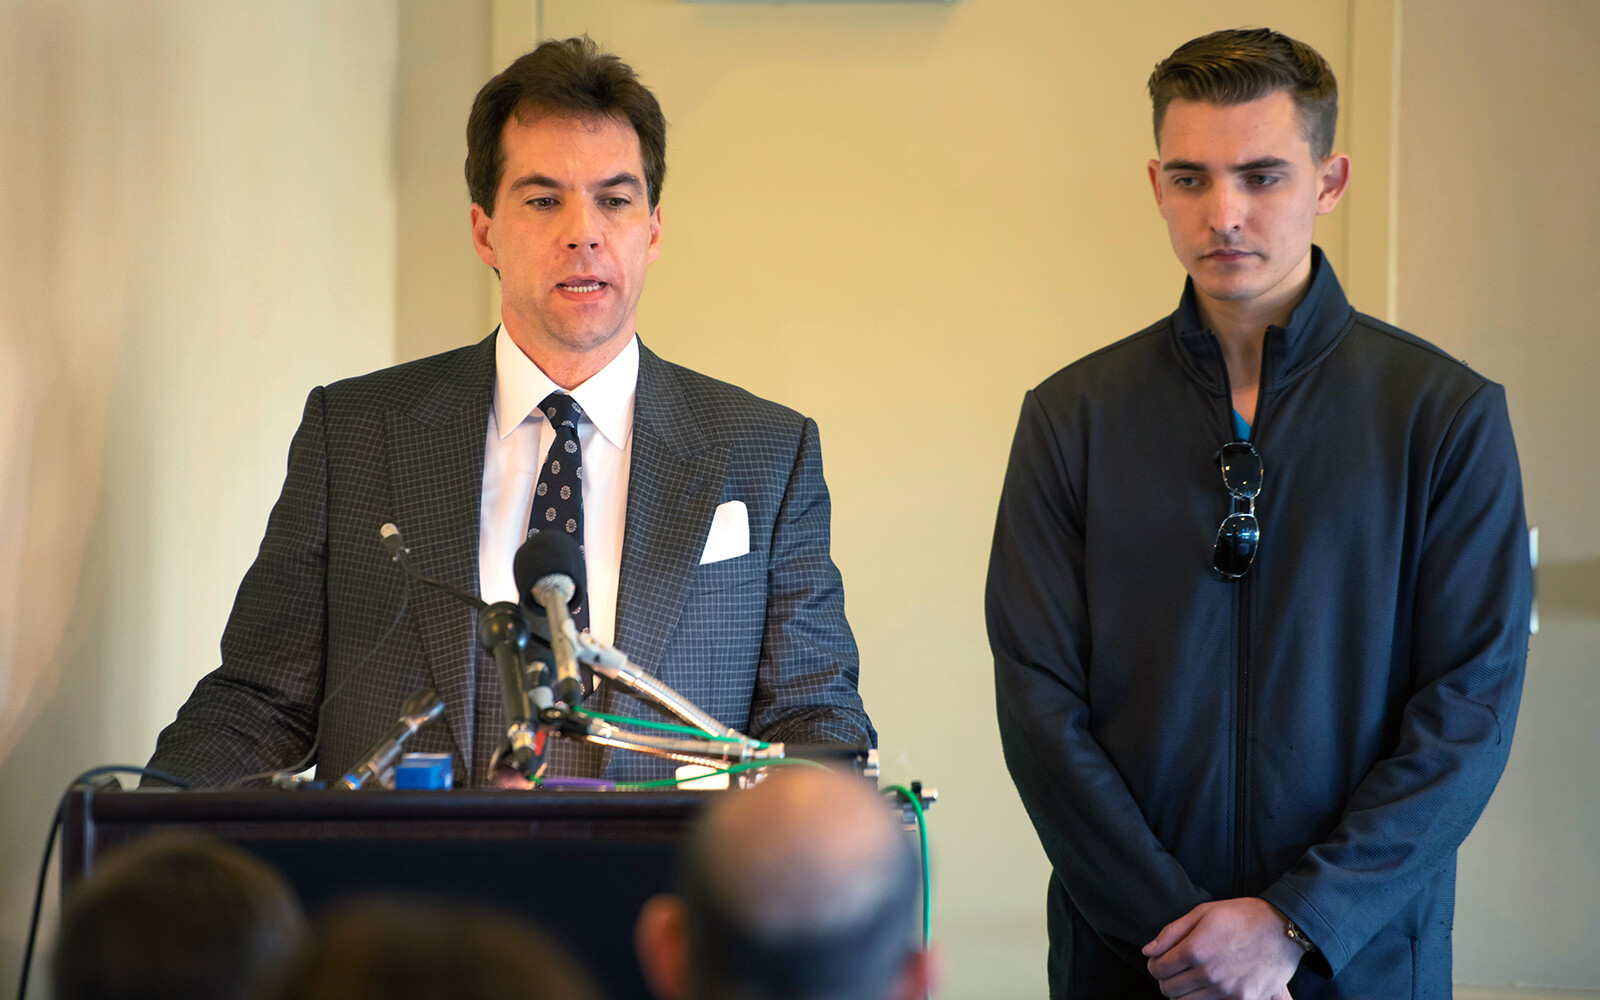 FCC proposes $5 million robocall fine against right-wing operatives Jacob Wohl and Jack Burkman